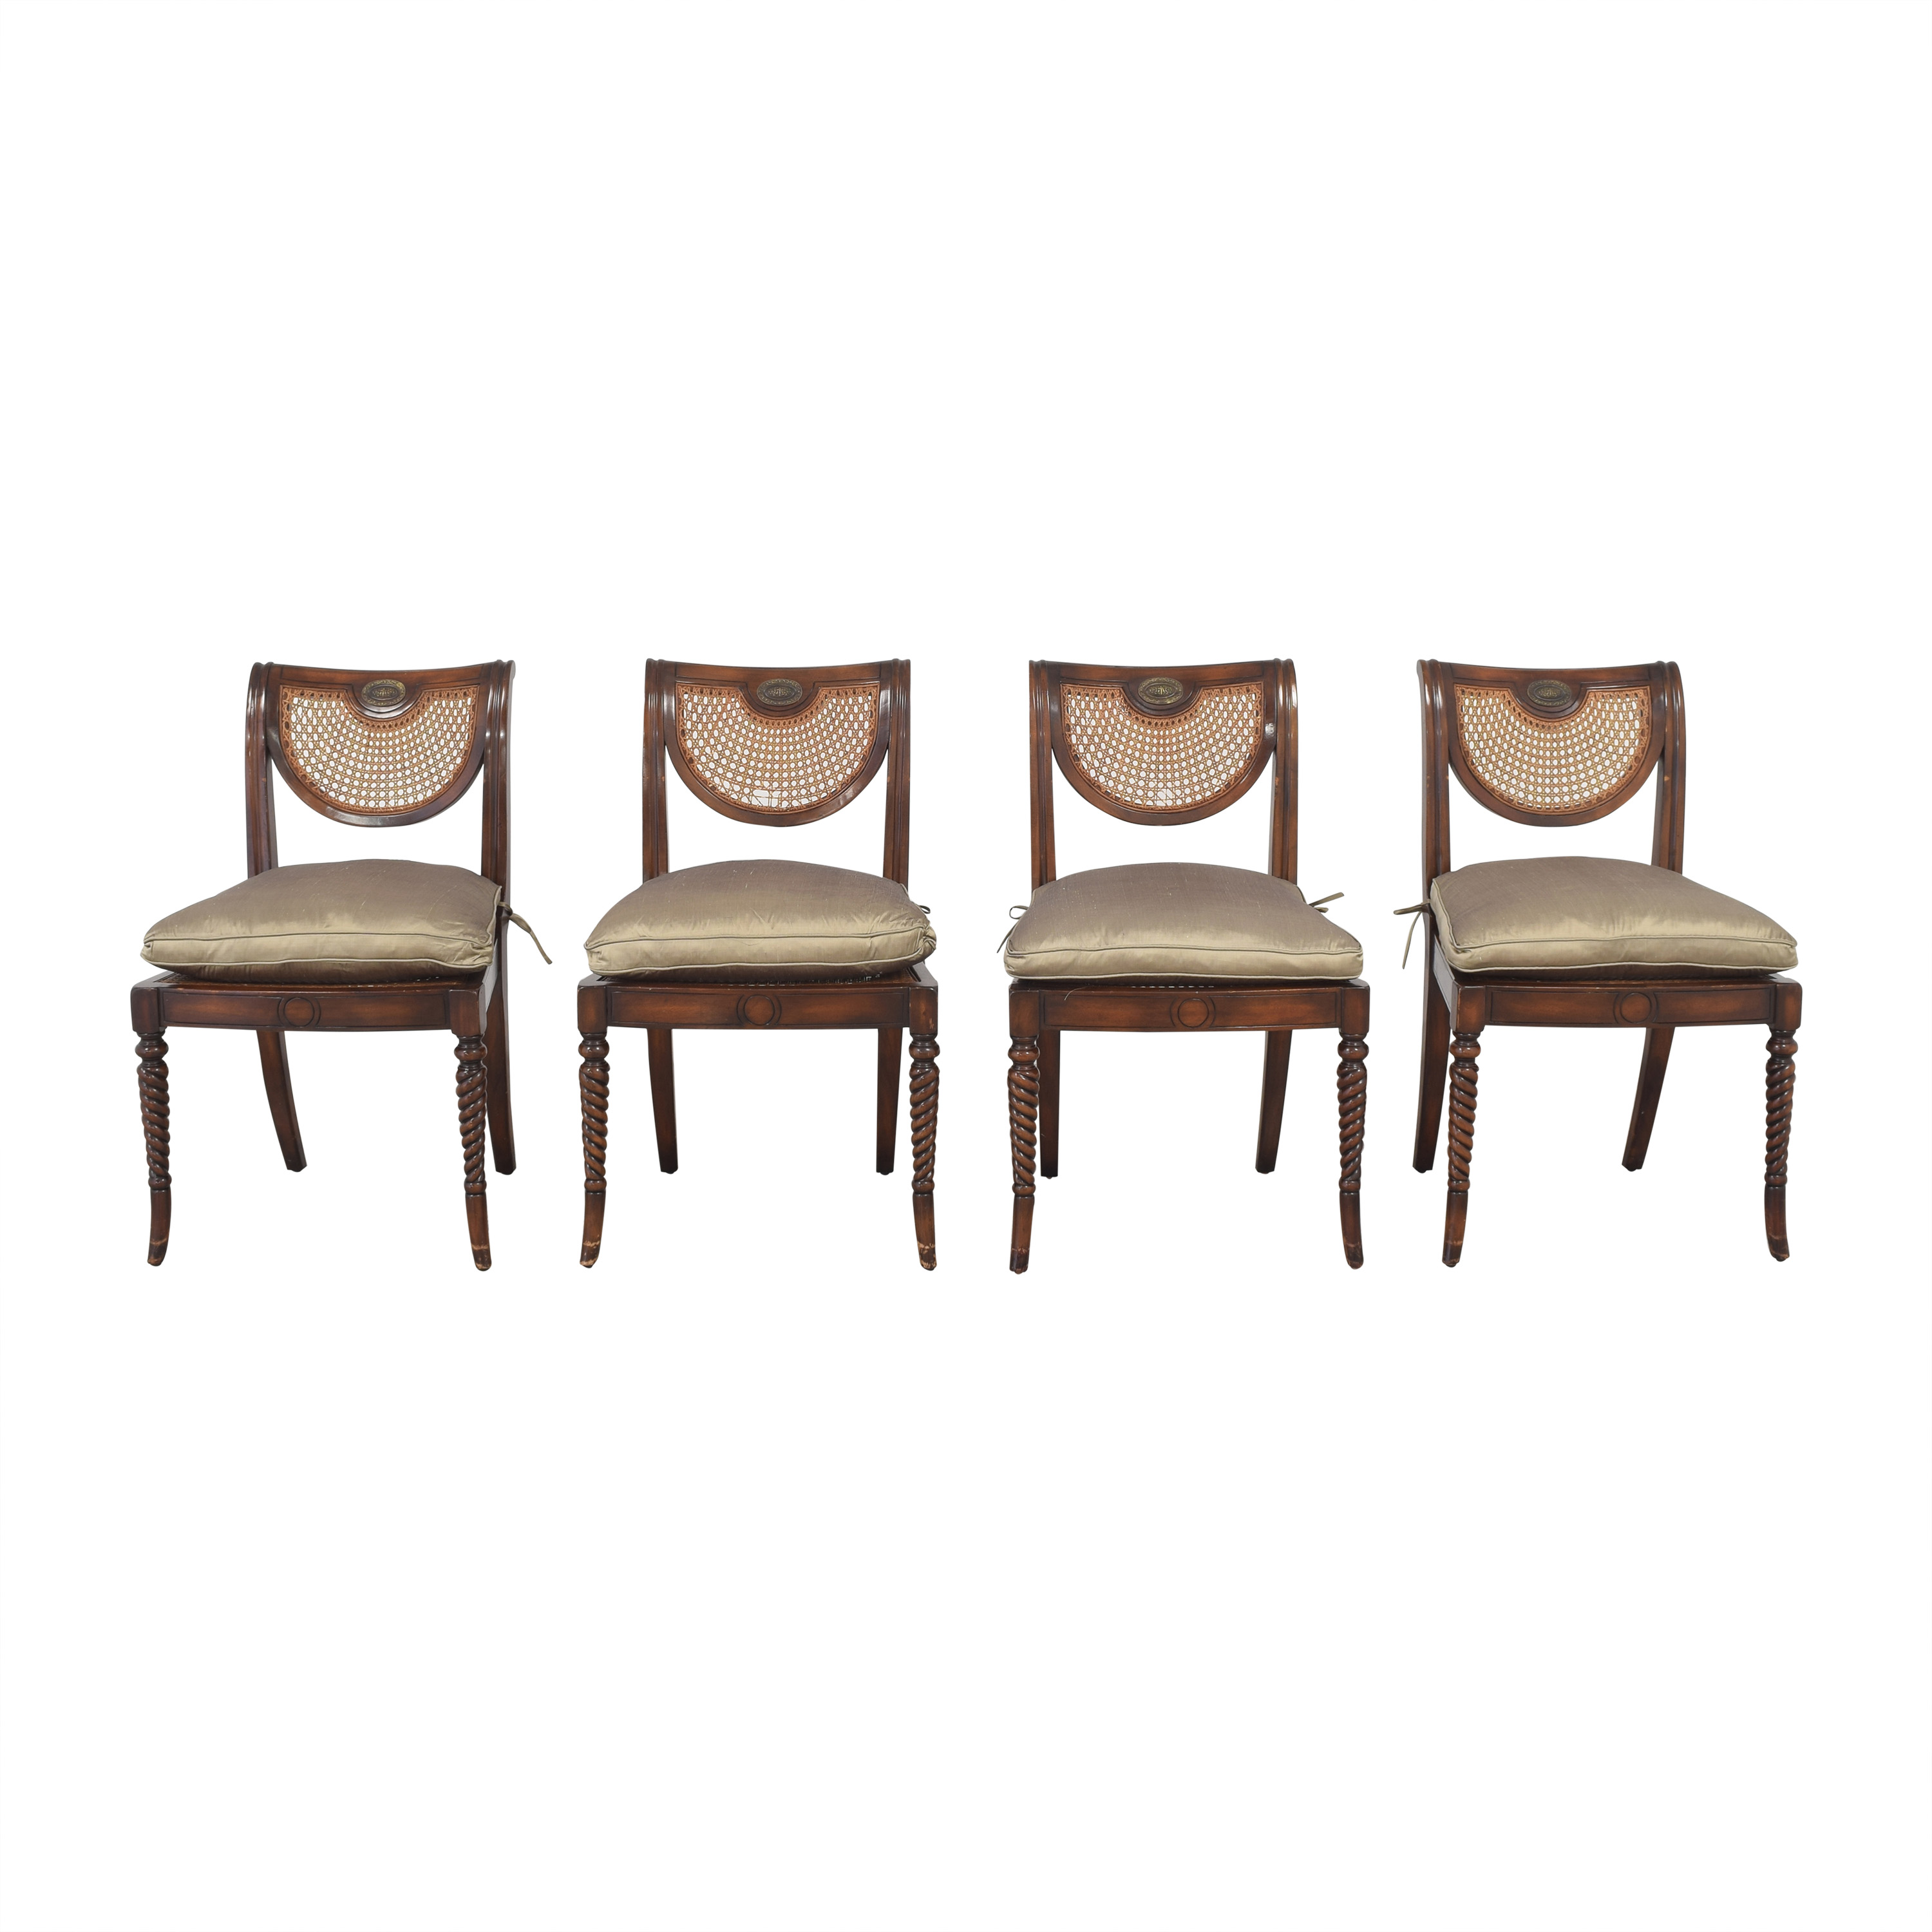 shop ABC Carpet & Home Dining Chairs ABC Carpet & Home Chairs